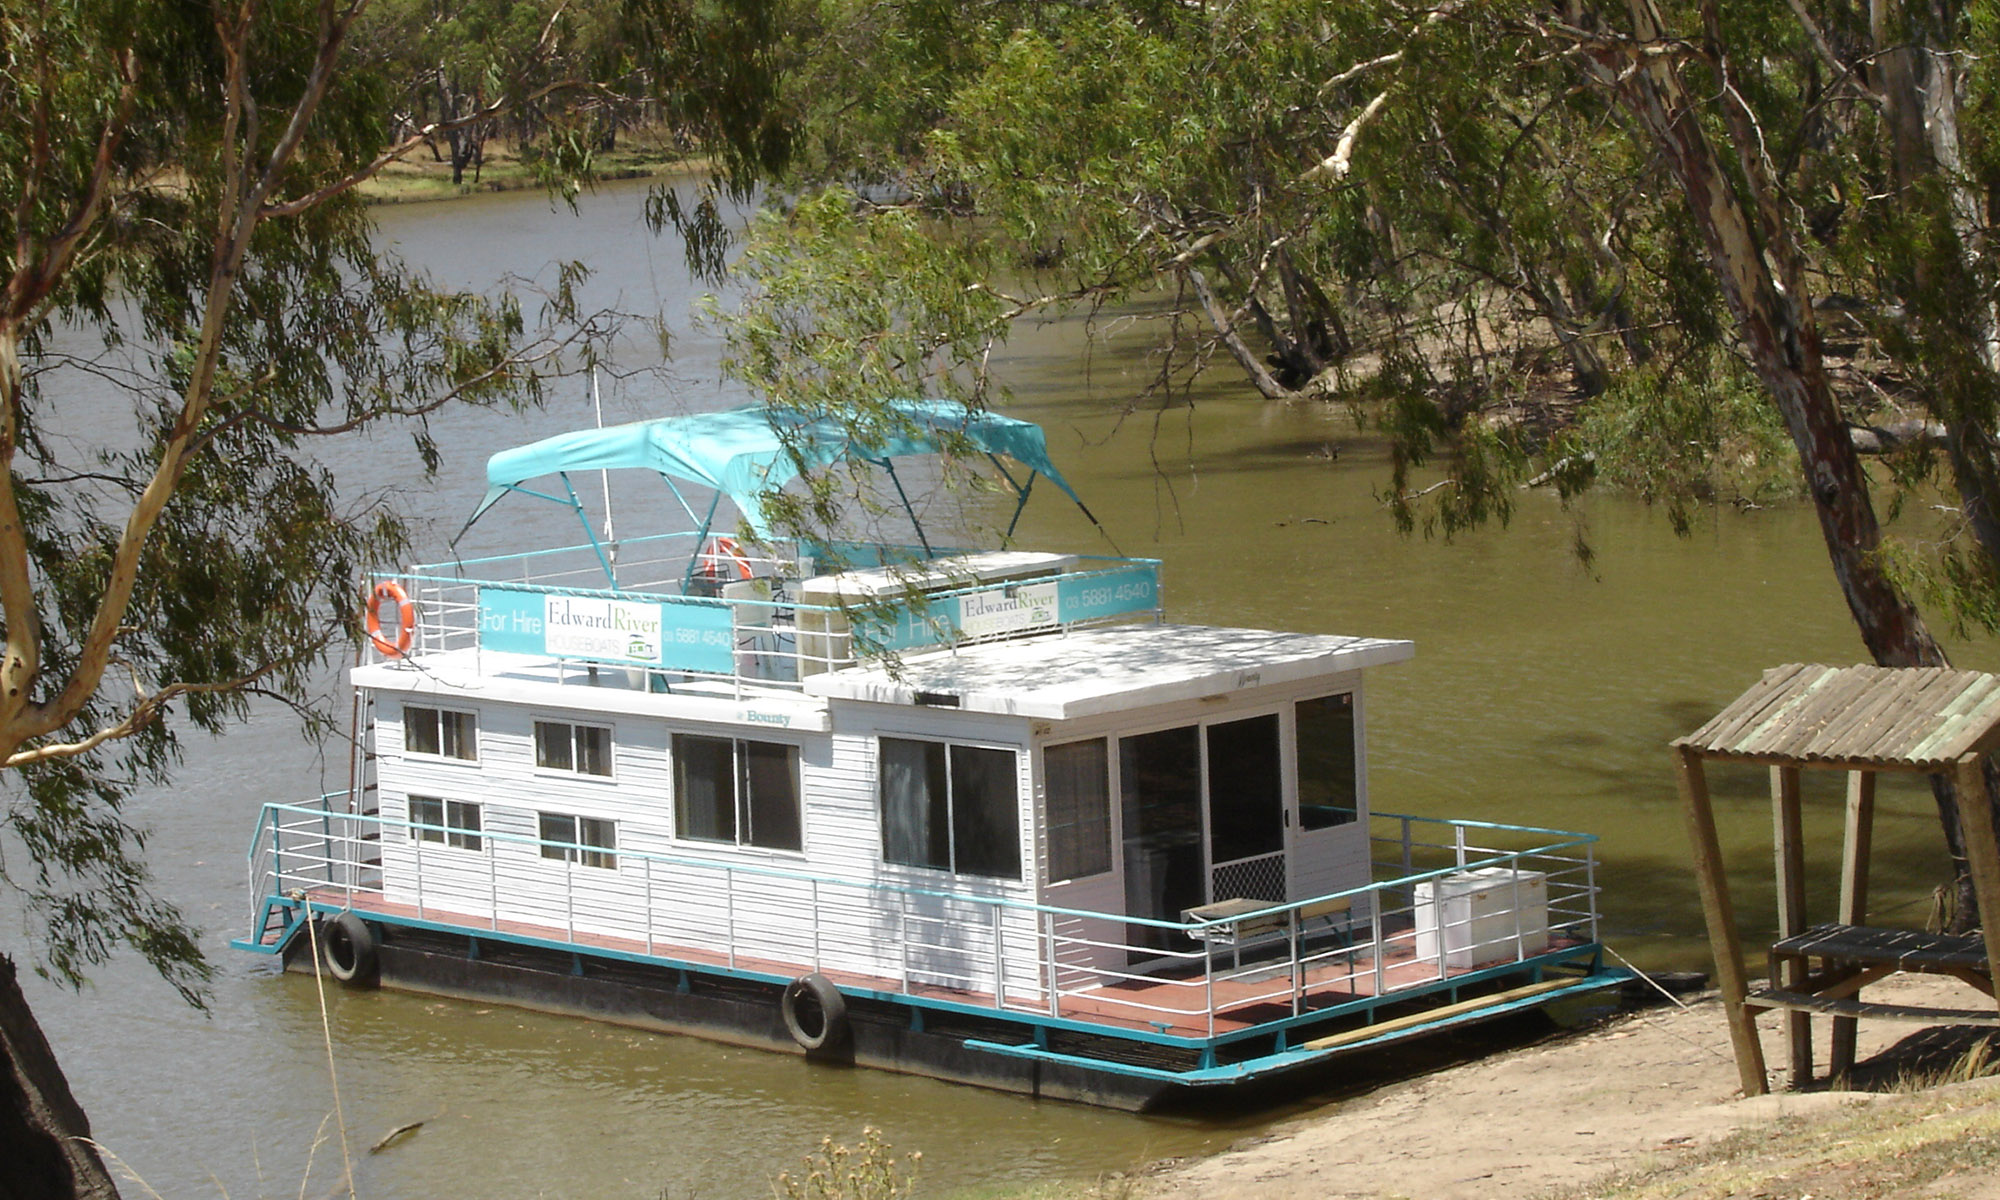 Edward River Houseboats